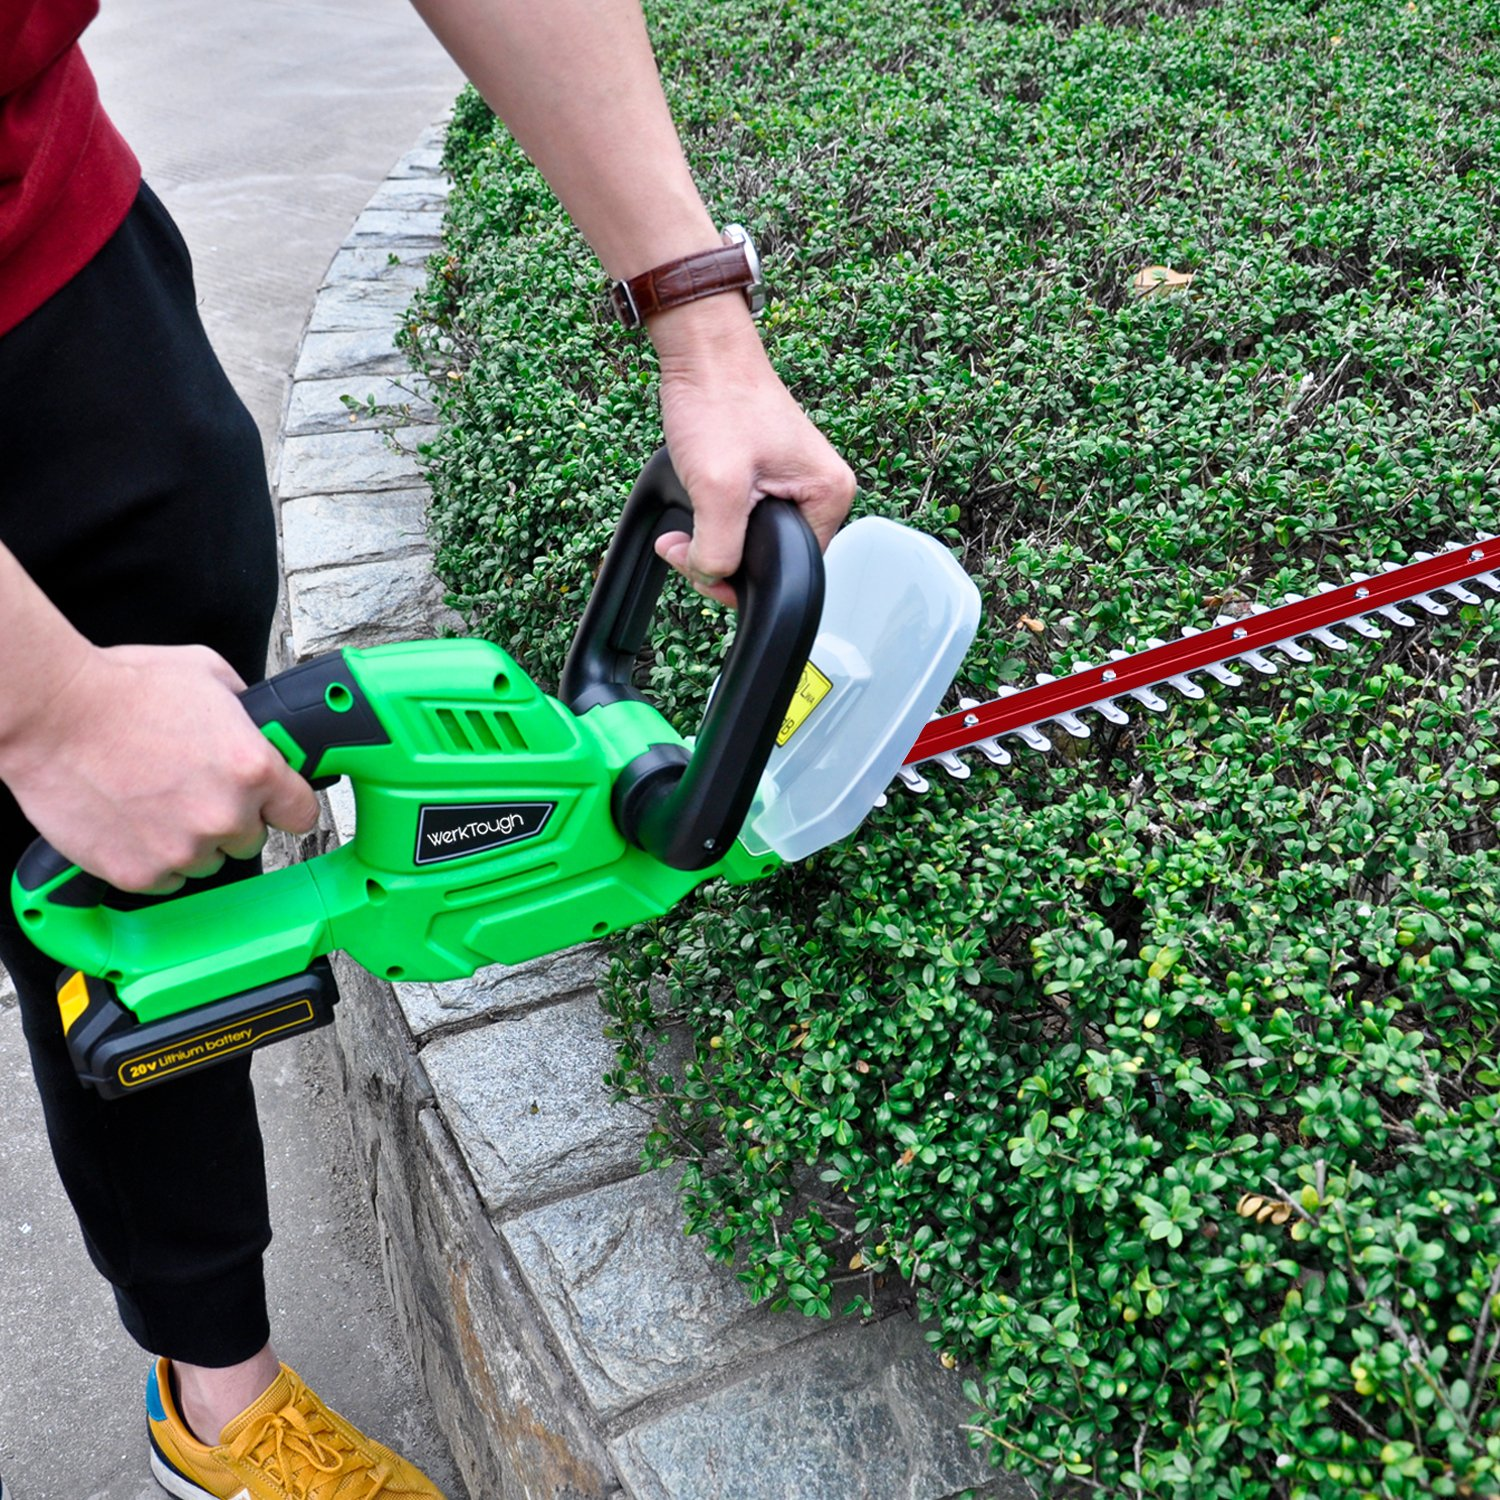 Werktough HT001 20V Lithium Ion Cordless Hedge Trimmer,2.0 AH Battery Included